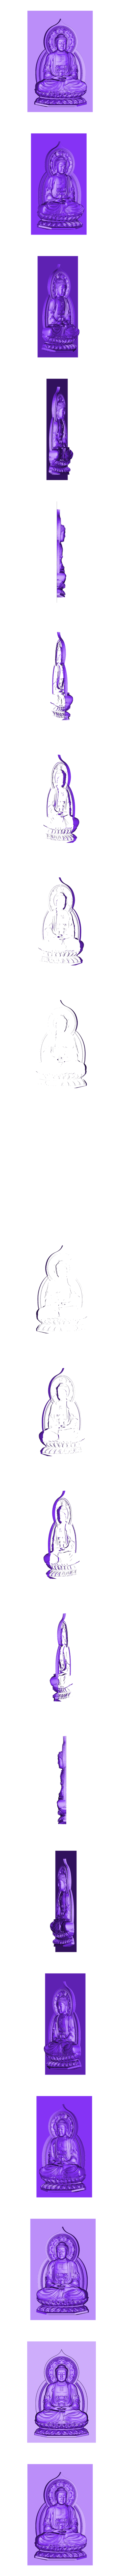 buddhaRelief.stl Download free STL file 3d model of Buddha • 3D printable template, stlfilesfree